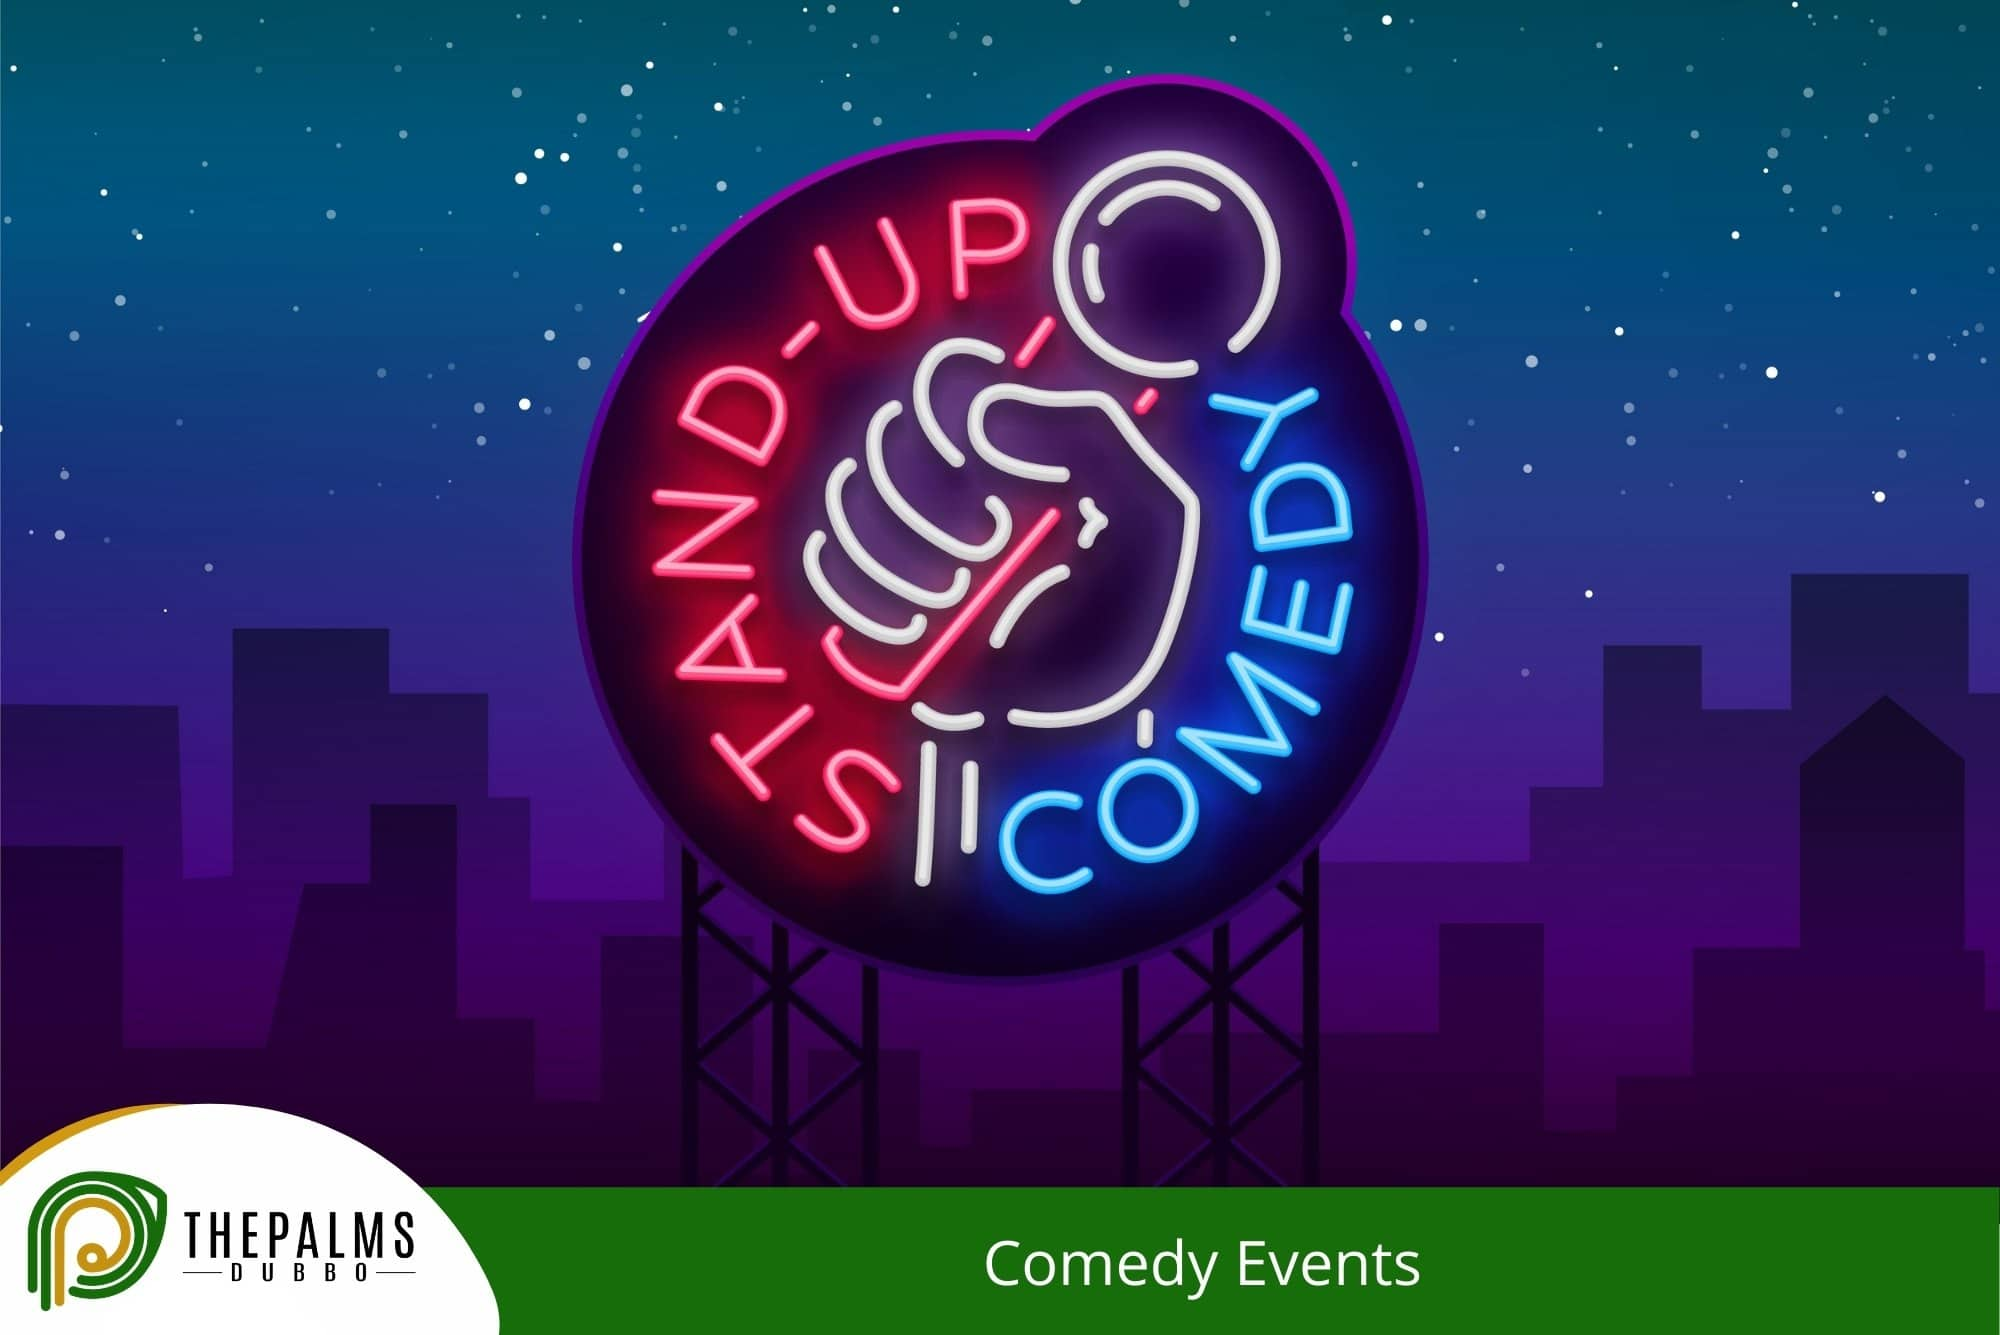 Comedy Events